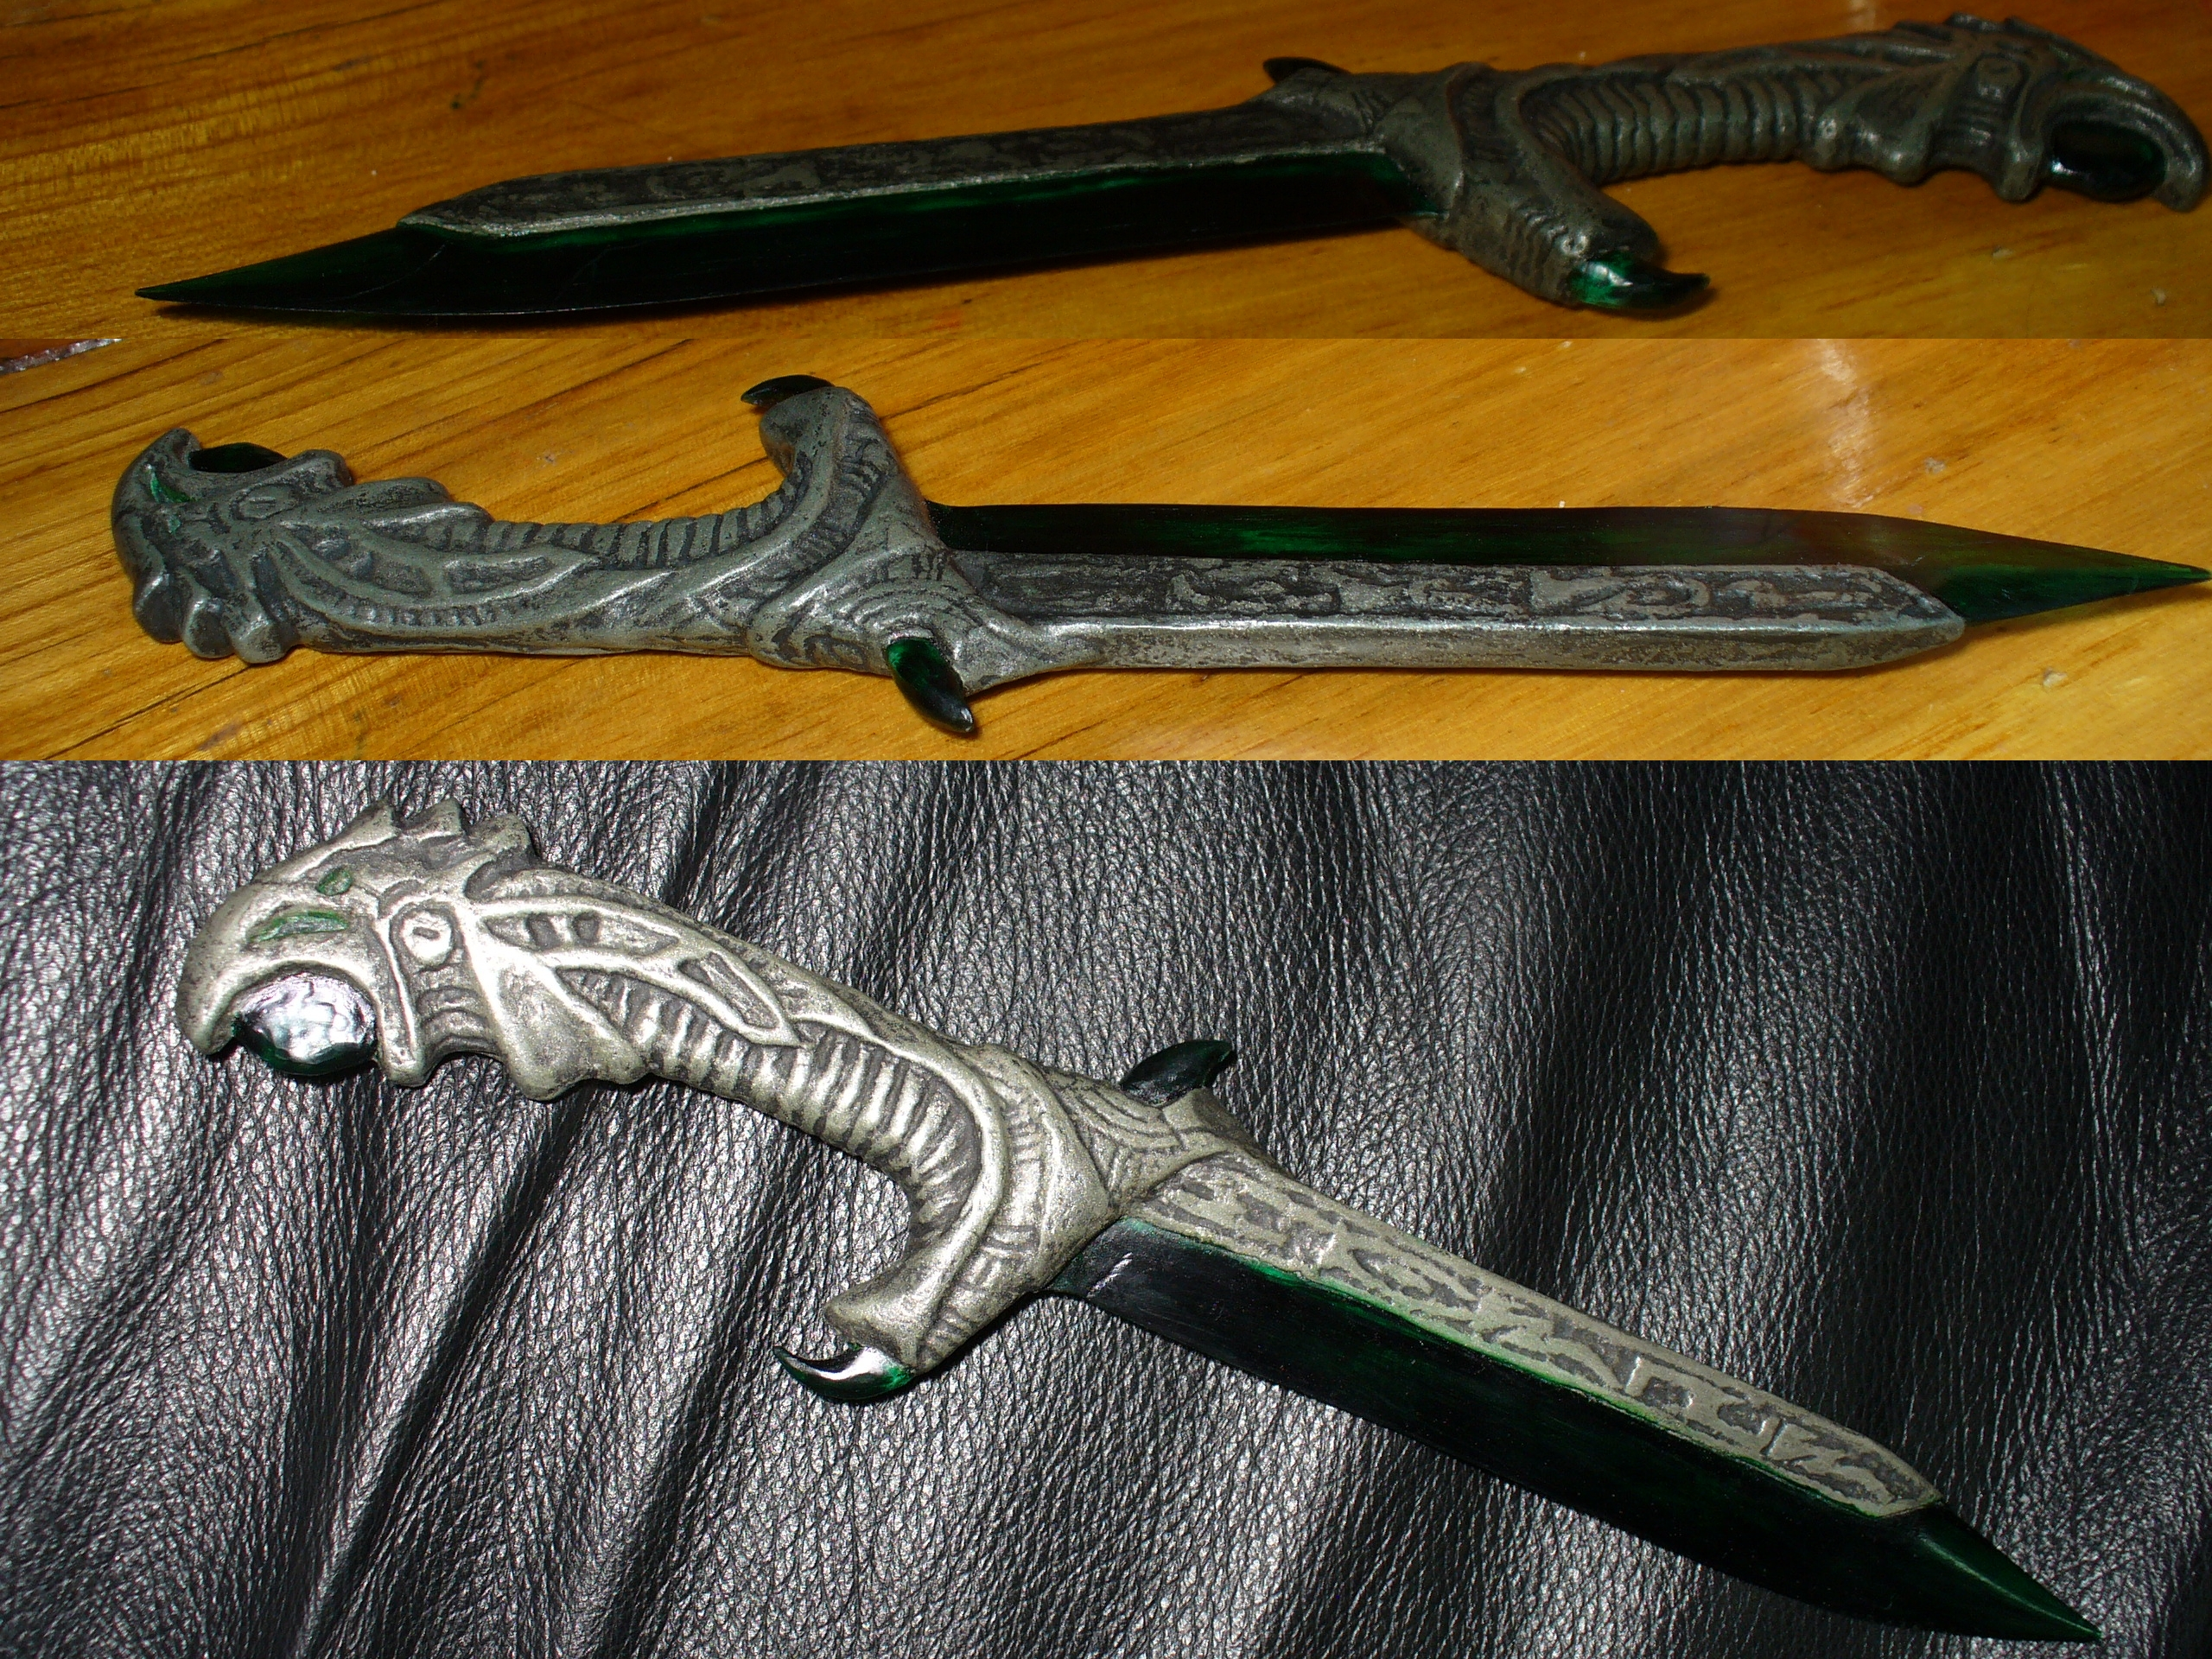 REAL Morrowind Glass Throwing Knife By Chief-01 On DeviantArt